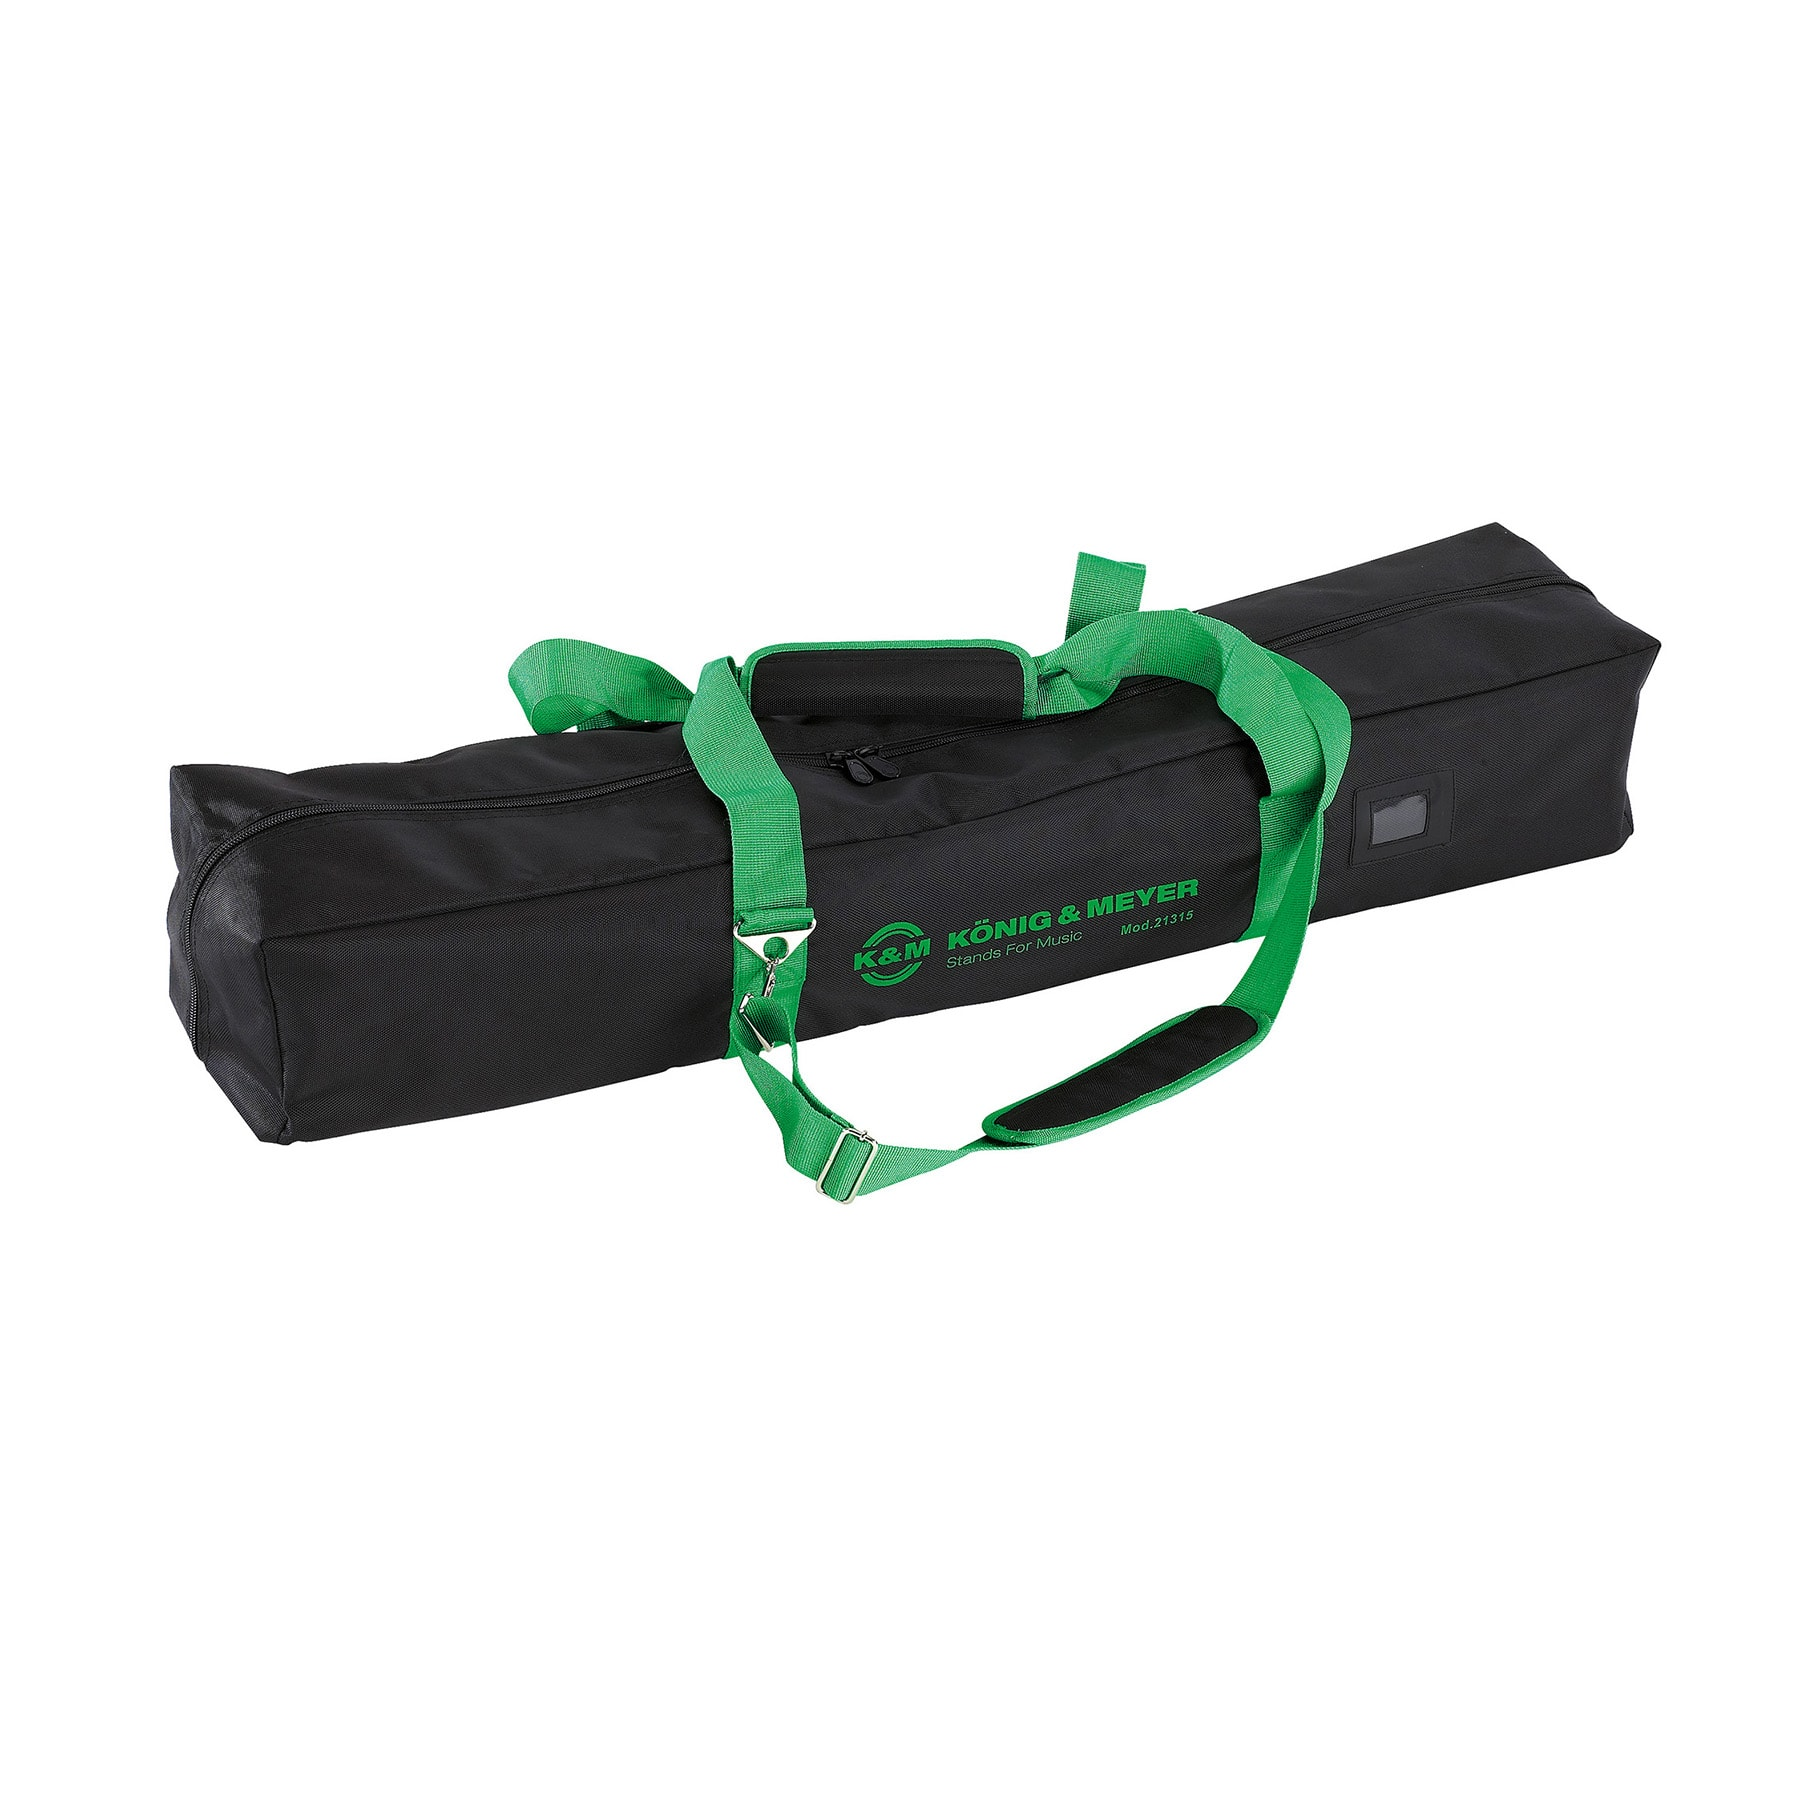 KM21315 - Carrying case for microphone stands